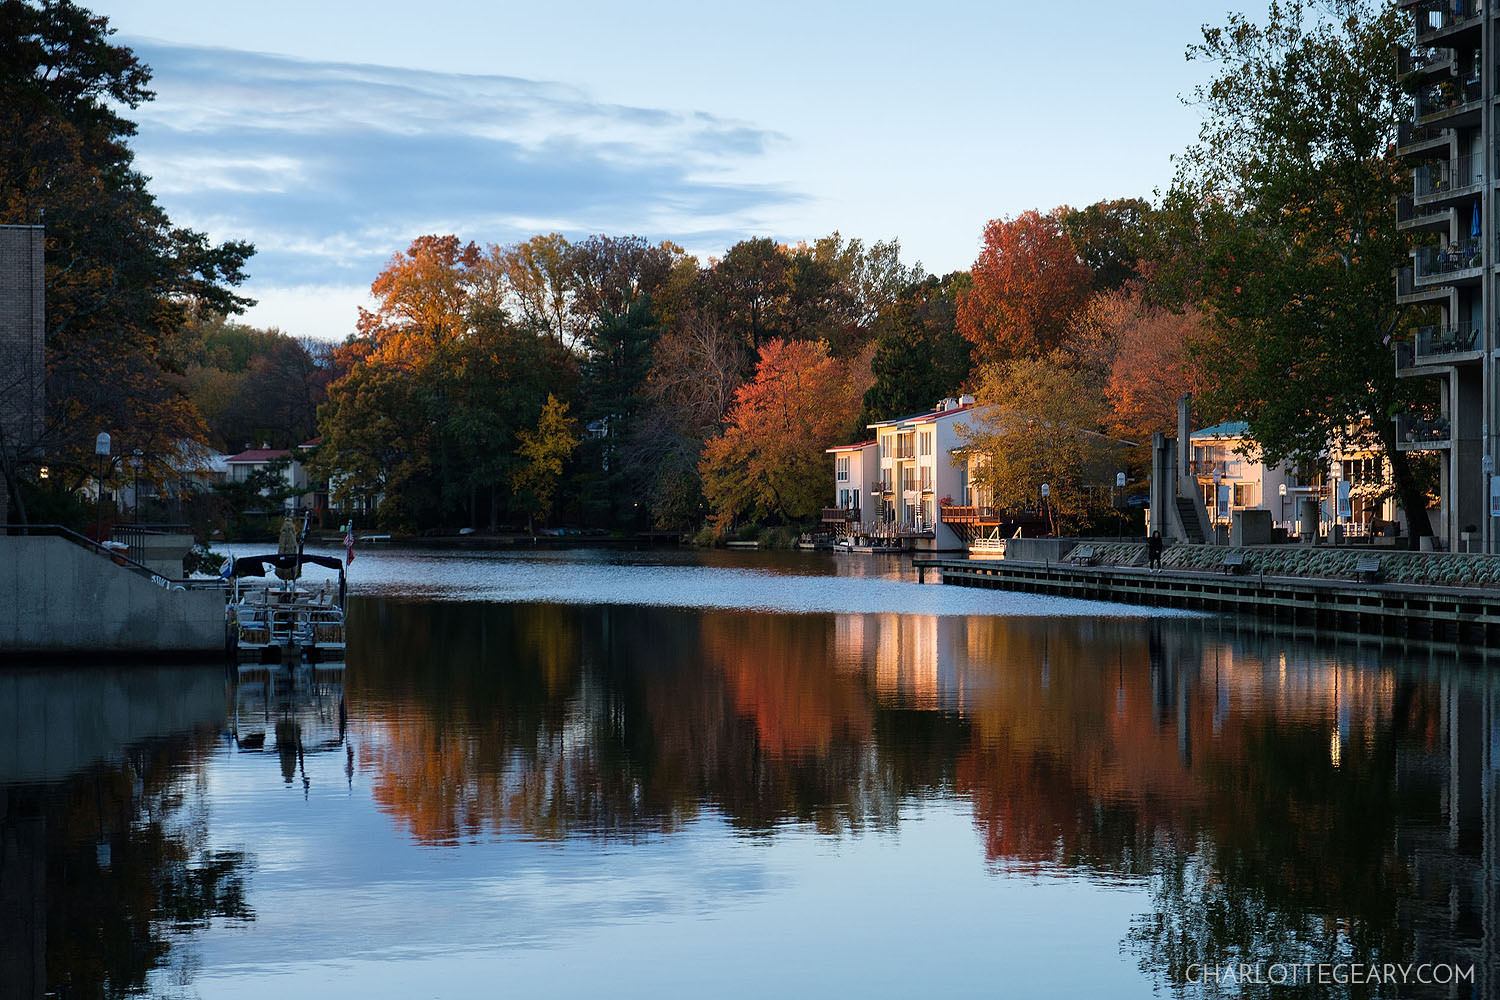 Sunrise as seen from Lake Anne Plaza in Reston